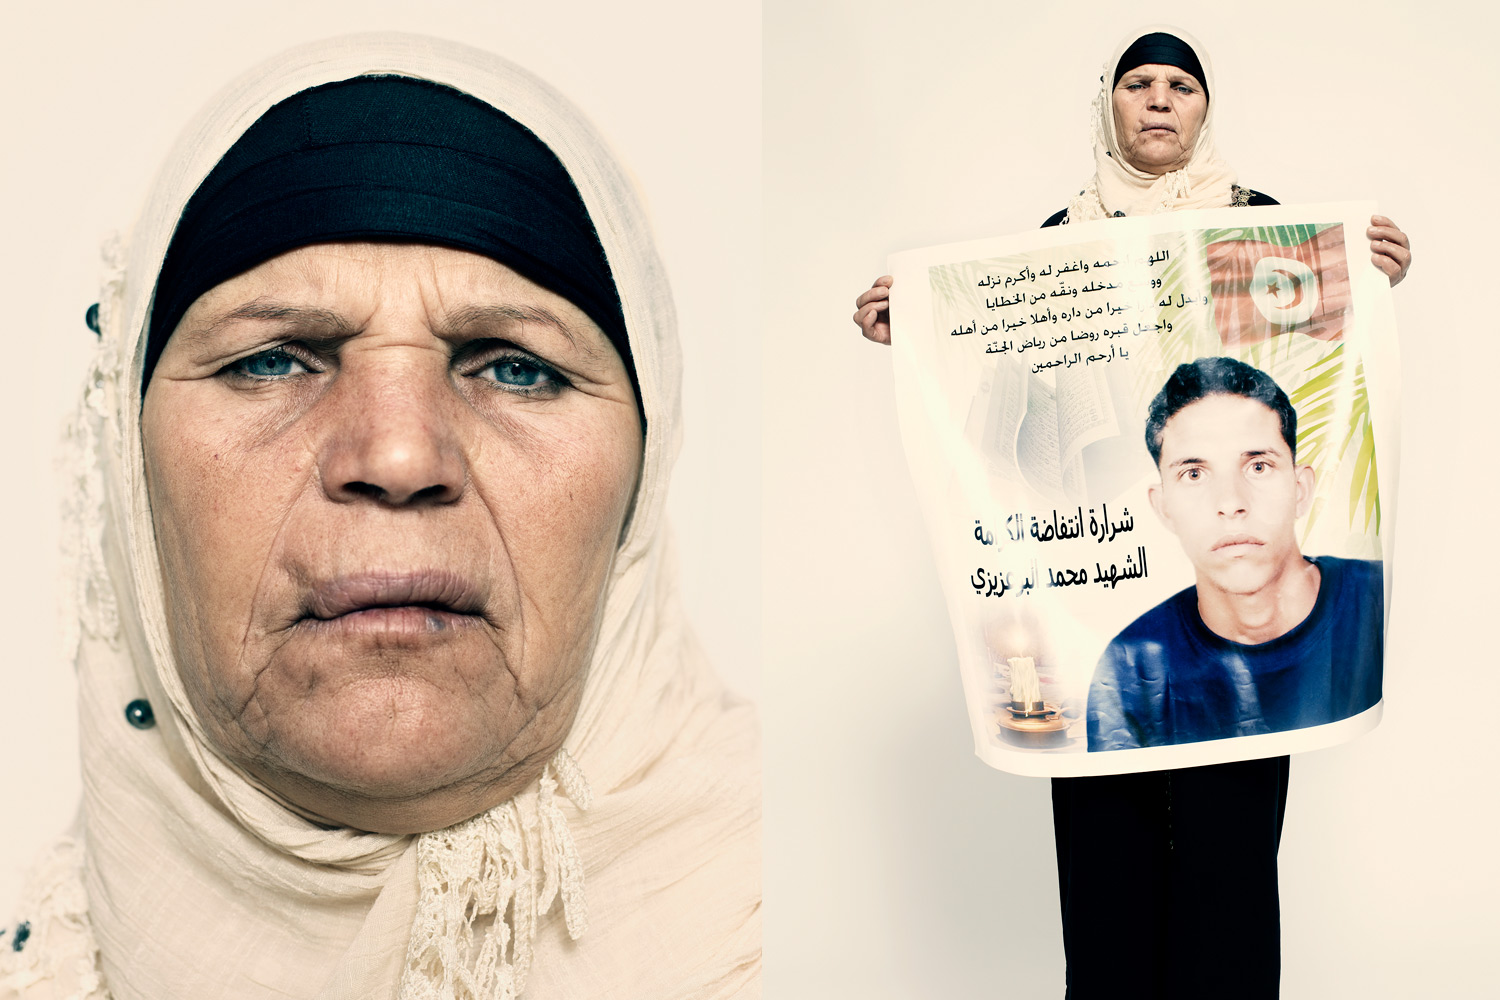 Mannoubia Bouazizi, the mother of Tunisian street vendor Mohamed Bouazizi, says,  Mohamed suffered a lot. He worked hard. But when he set fire to himself, it wasn't about his scales being confiscated. It was about his dignity.